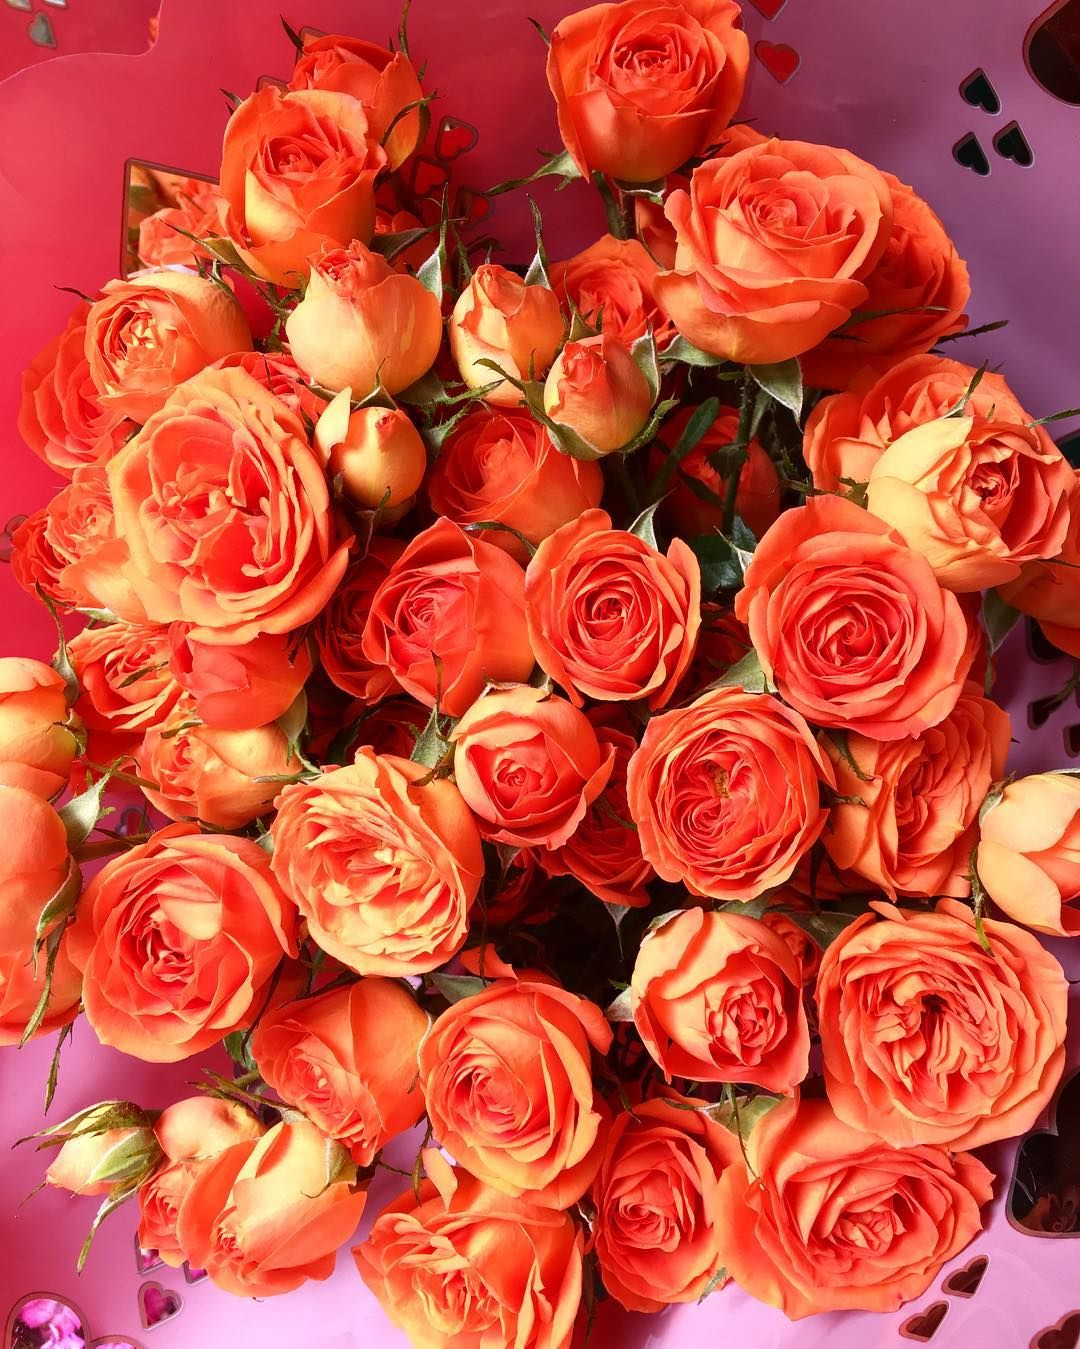 Just bought these beauties to brighten my Monday... #roses #flowers ...